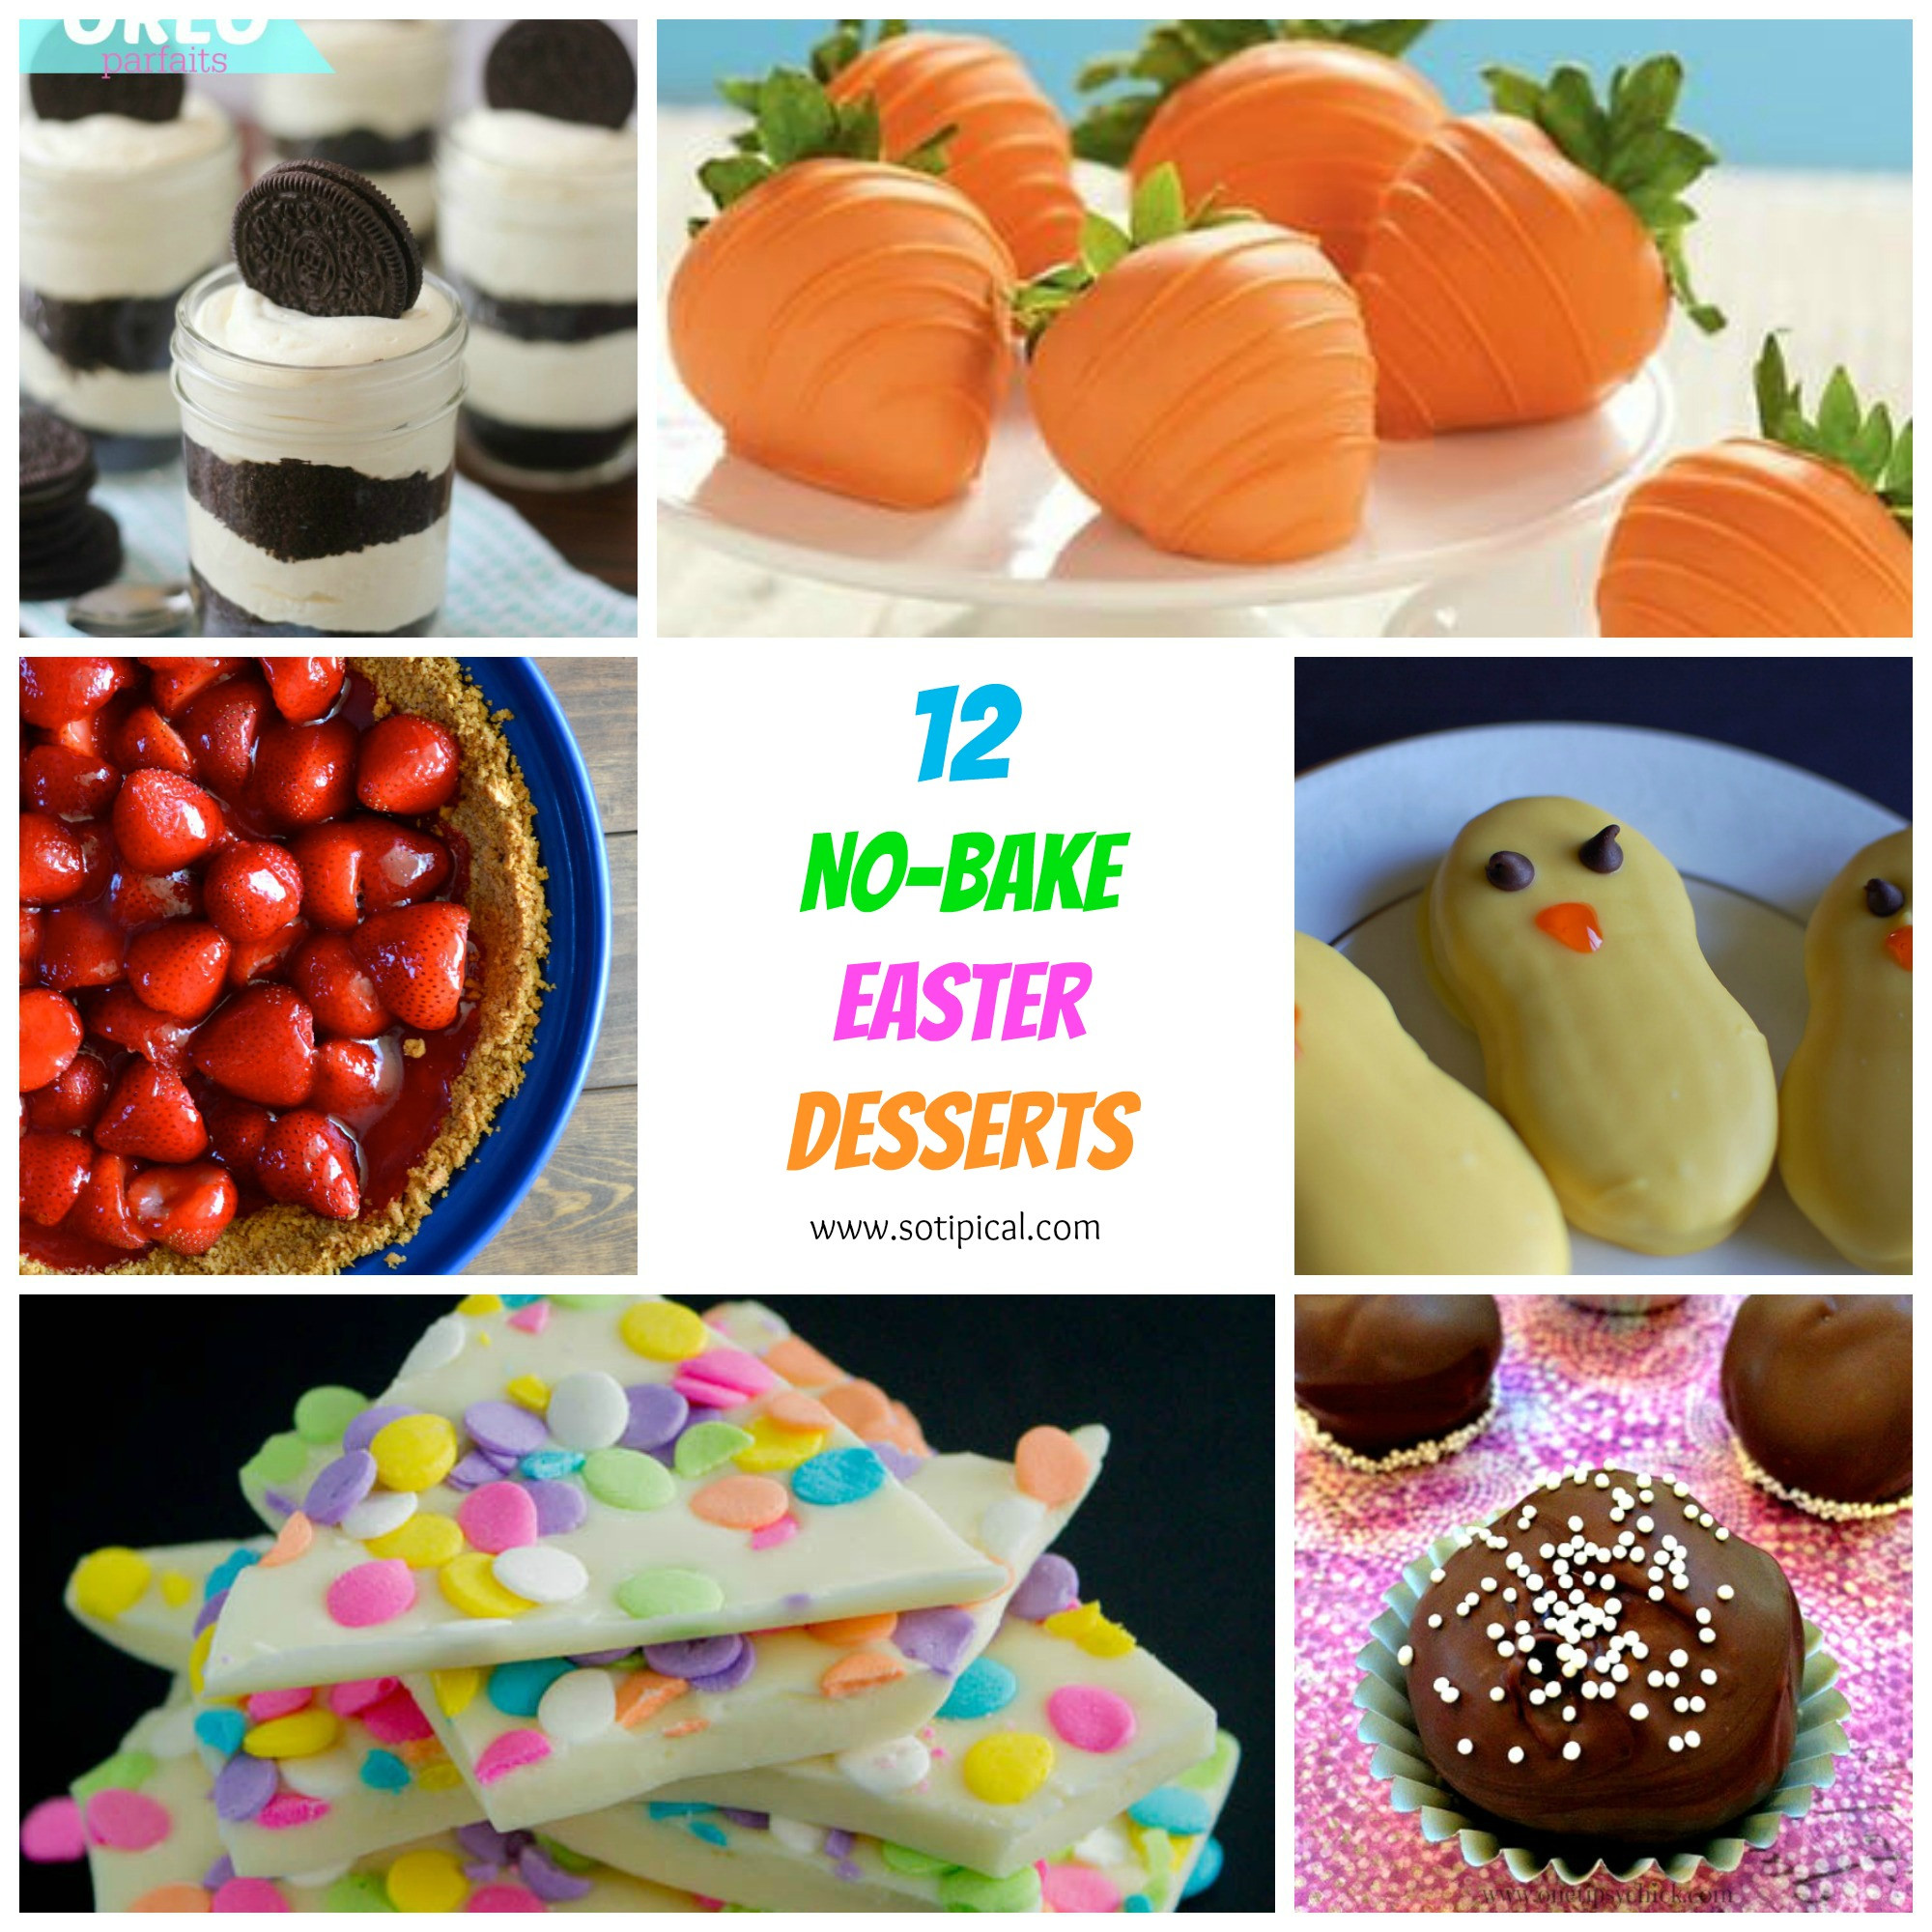 Desserts Recipes For Easter  12 No Bake Easter Desserts